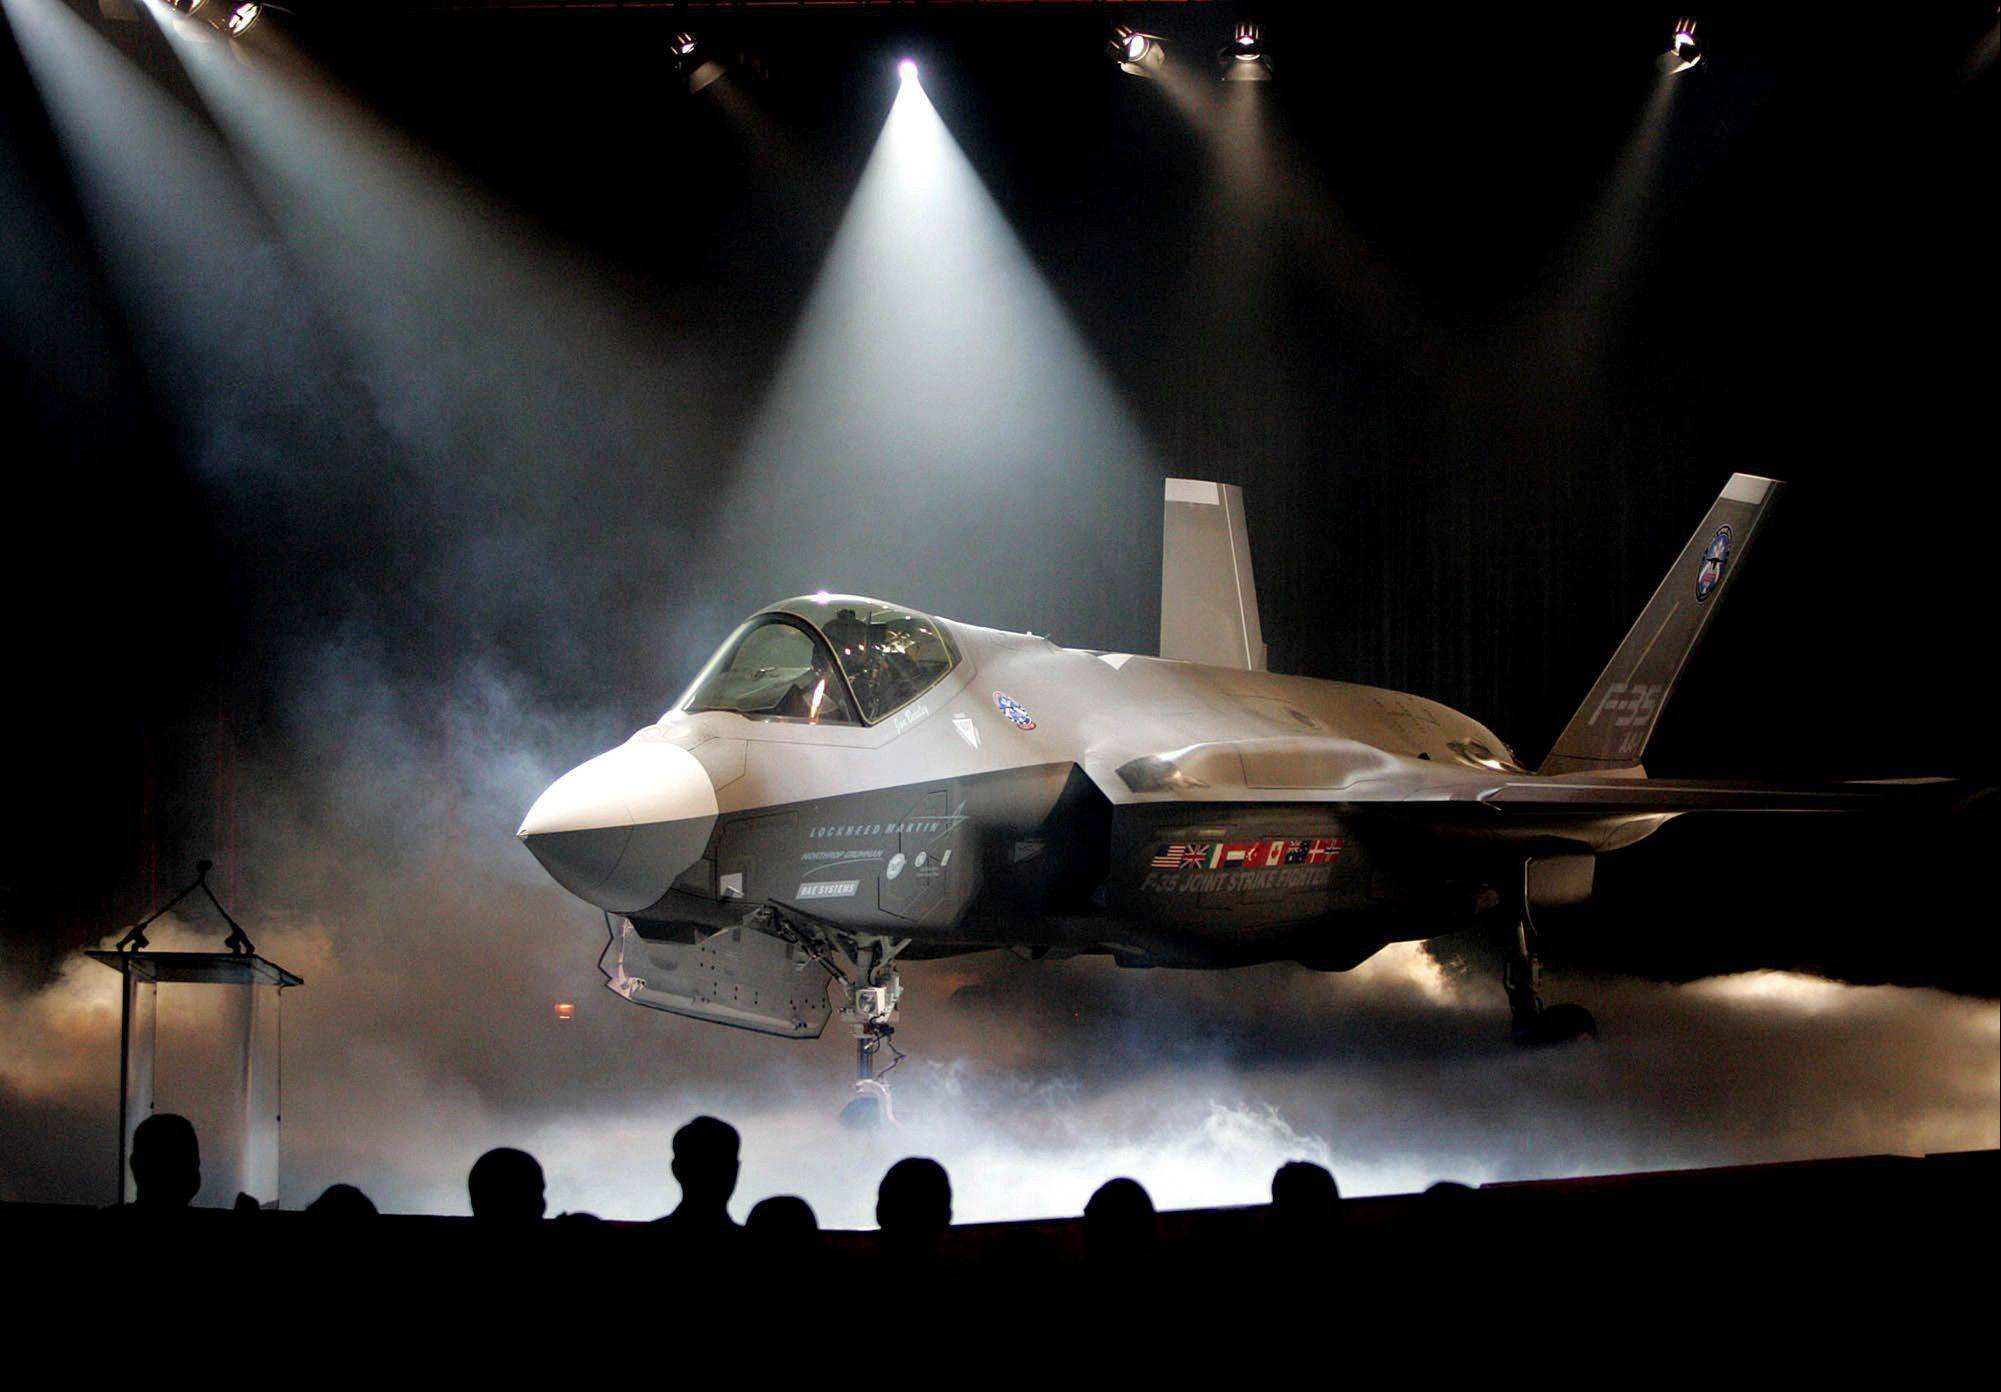 Associated Press/July 7, 2006The Lockheed Martin F-35 Joint Strike Fighter